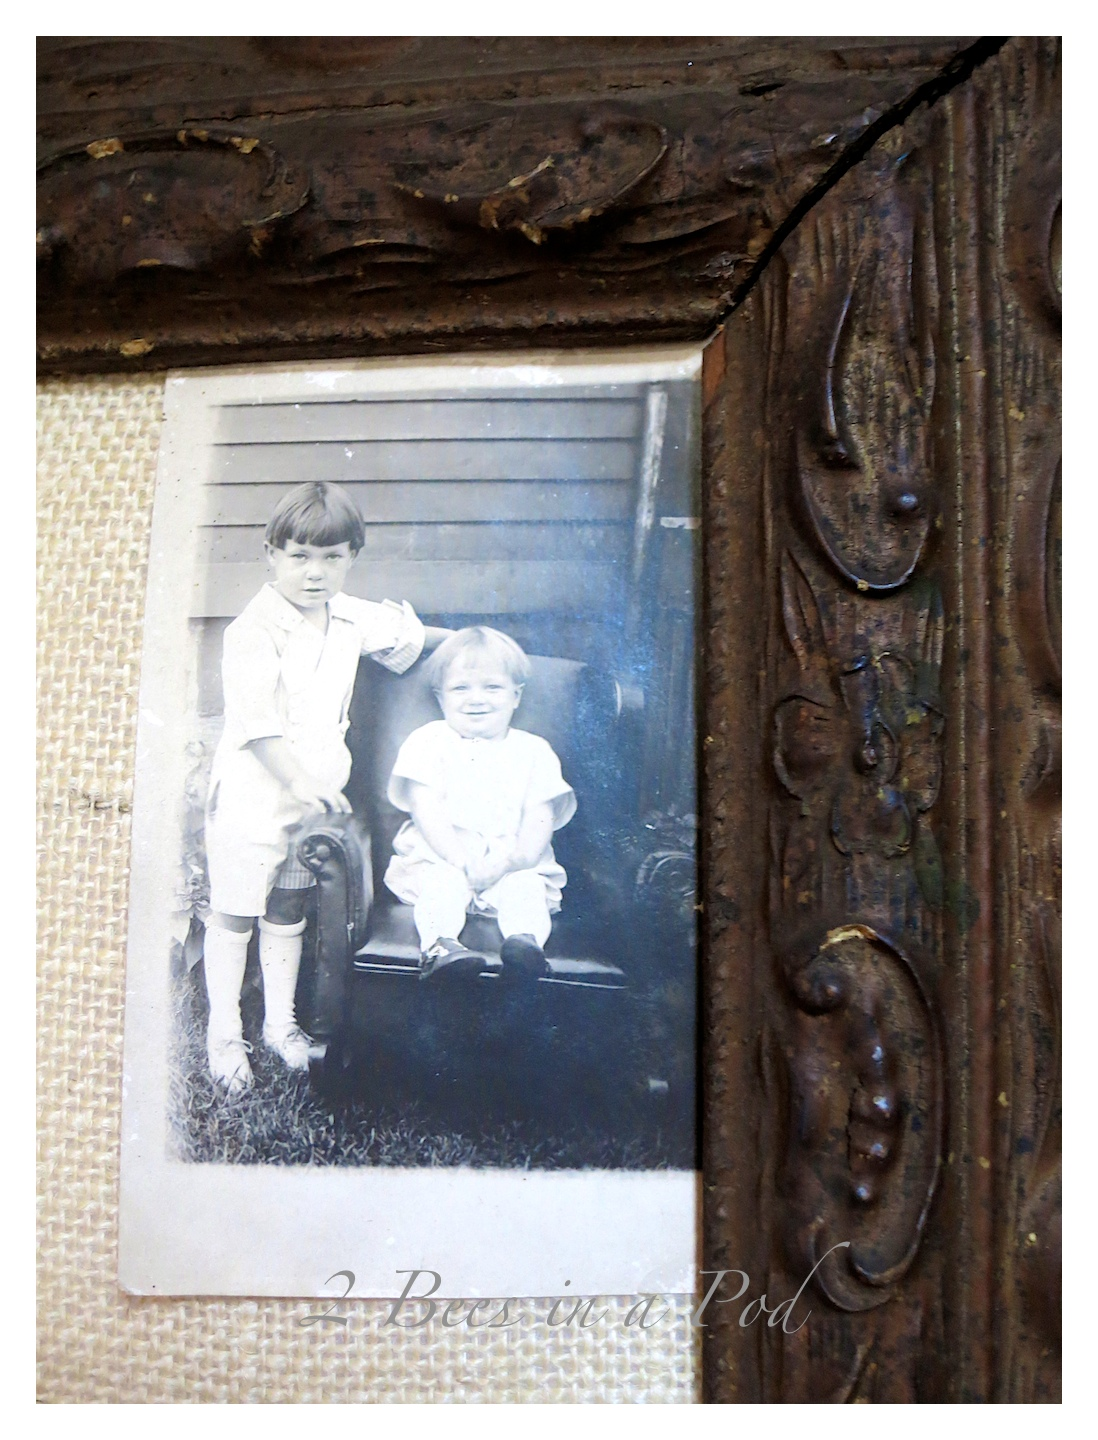 DIY burlap bulletin board. Made from a salvaged antique frame, burlap, foam board and batting. Cute decorated with vintage decor.Ancestors from long ago...love the vintage photos